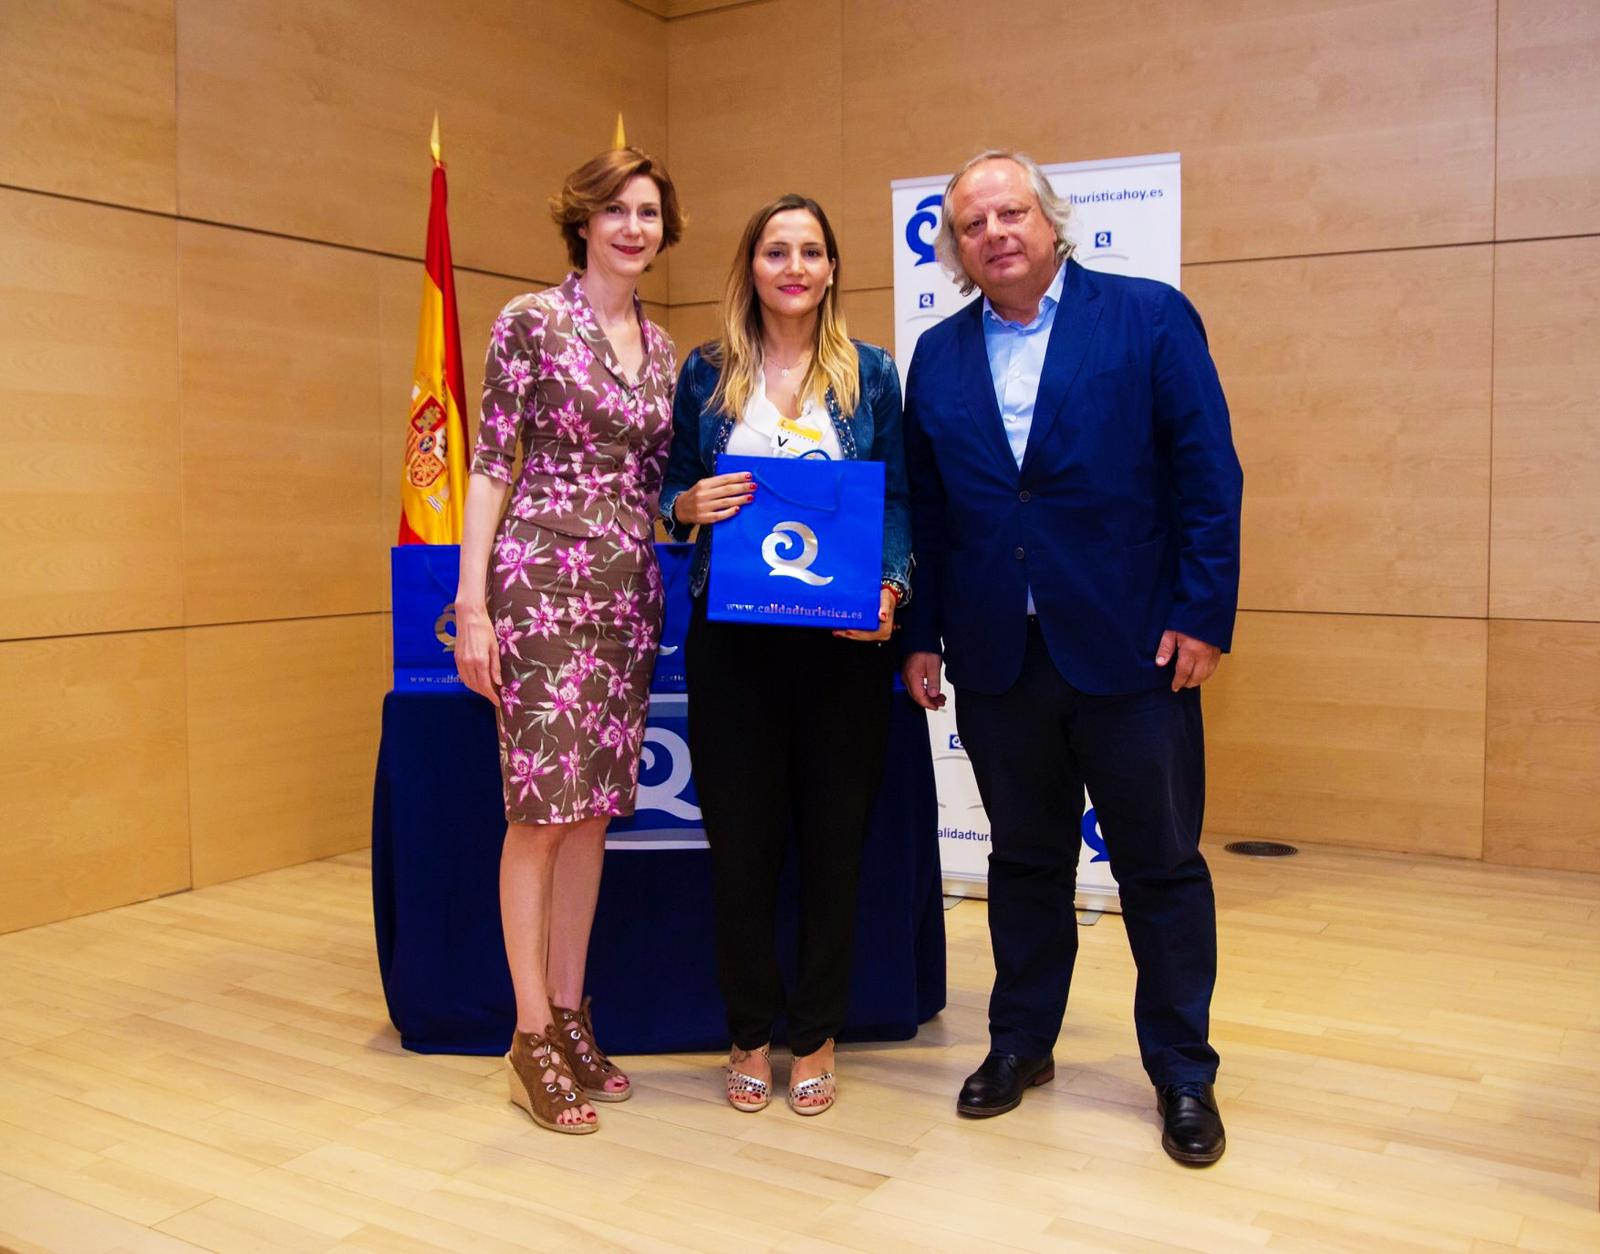 Sabina-Goretti Galindo, attended a similar ceremony at the headquarters of the Ministry of Tourism of Spain